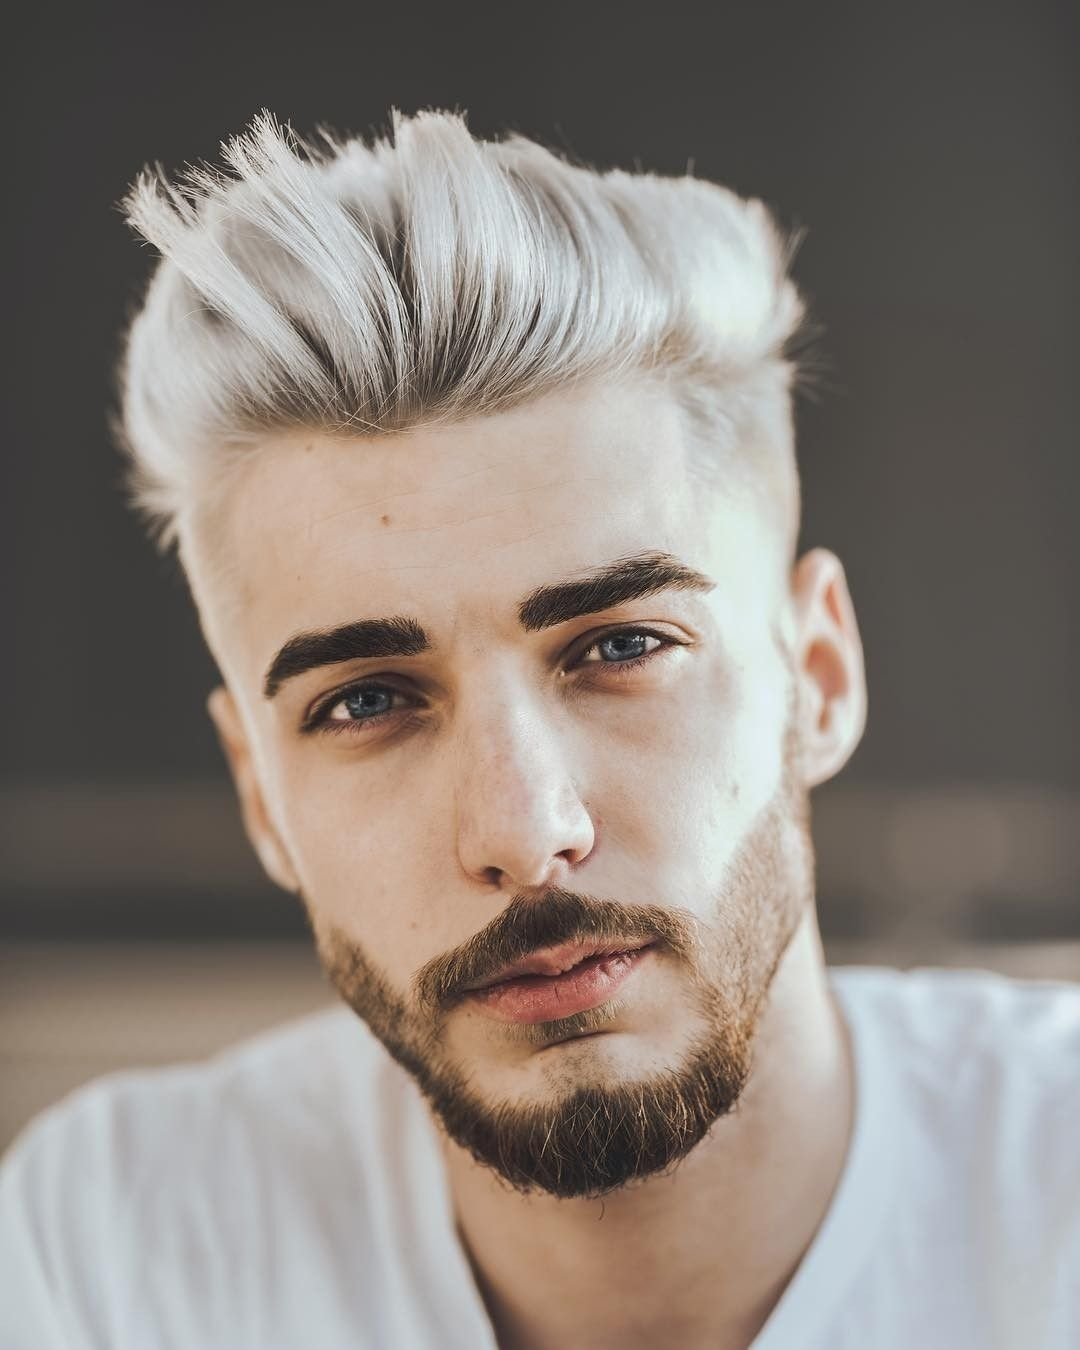 White Hairstyle For Men Gents Hair Style Beard And